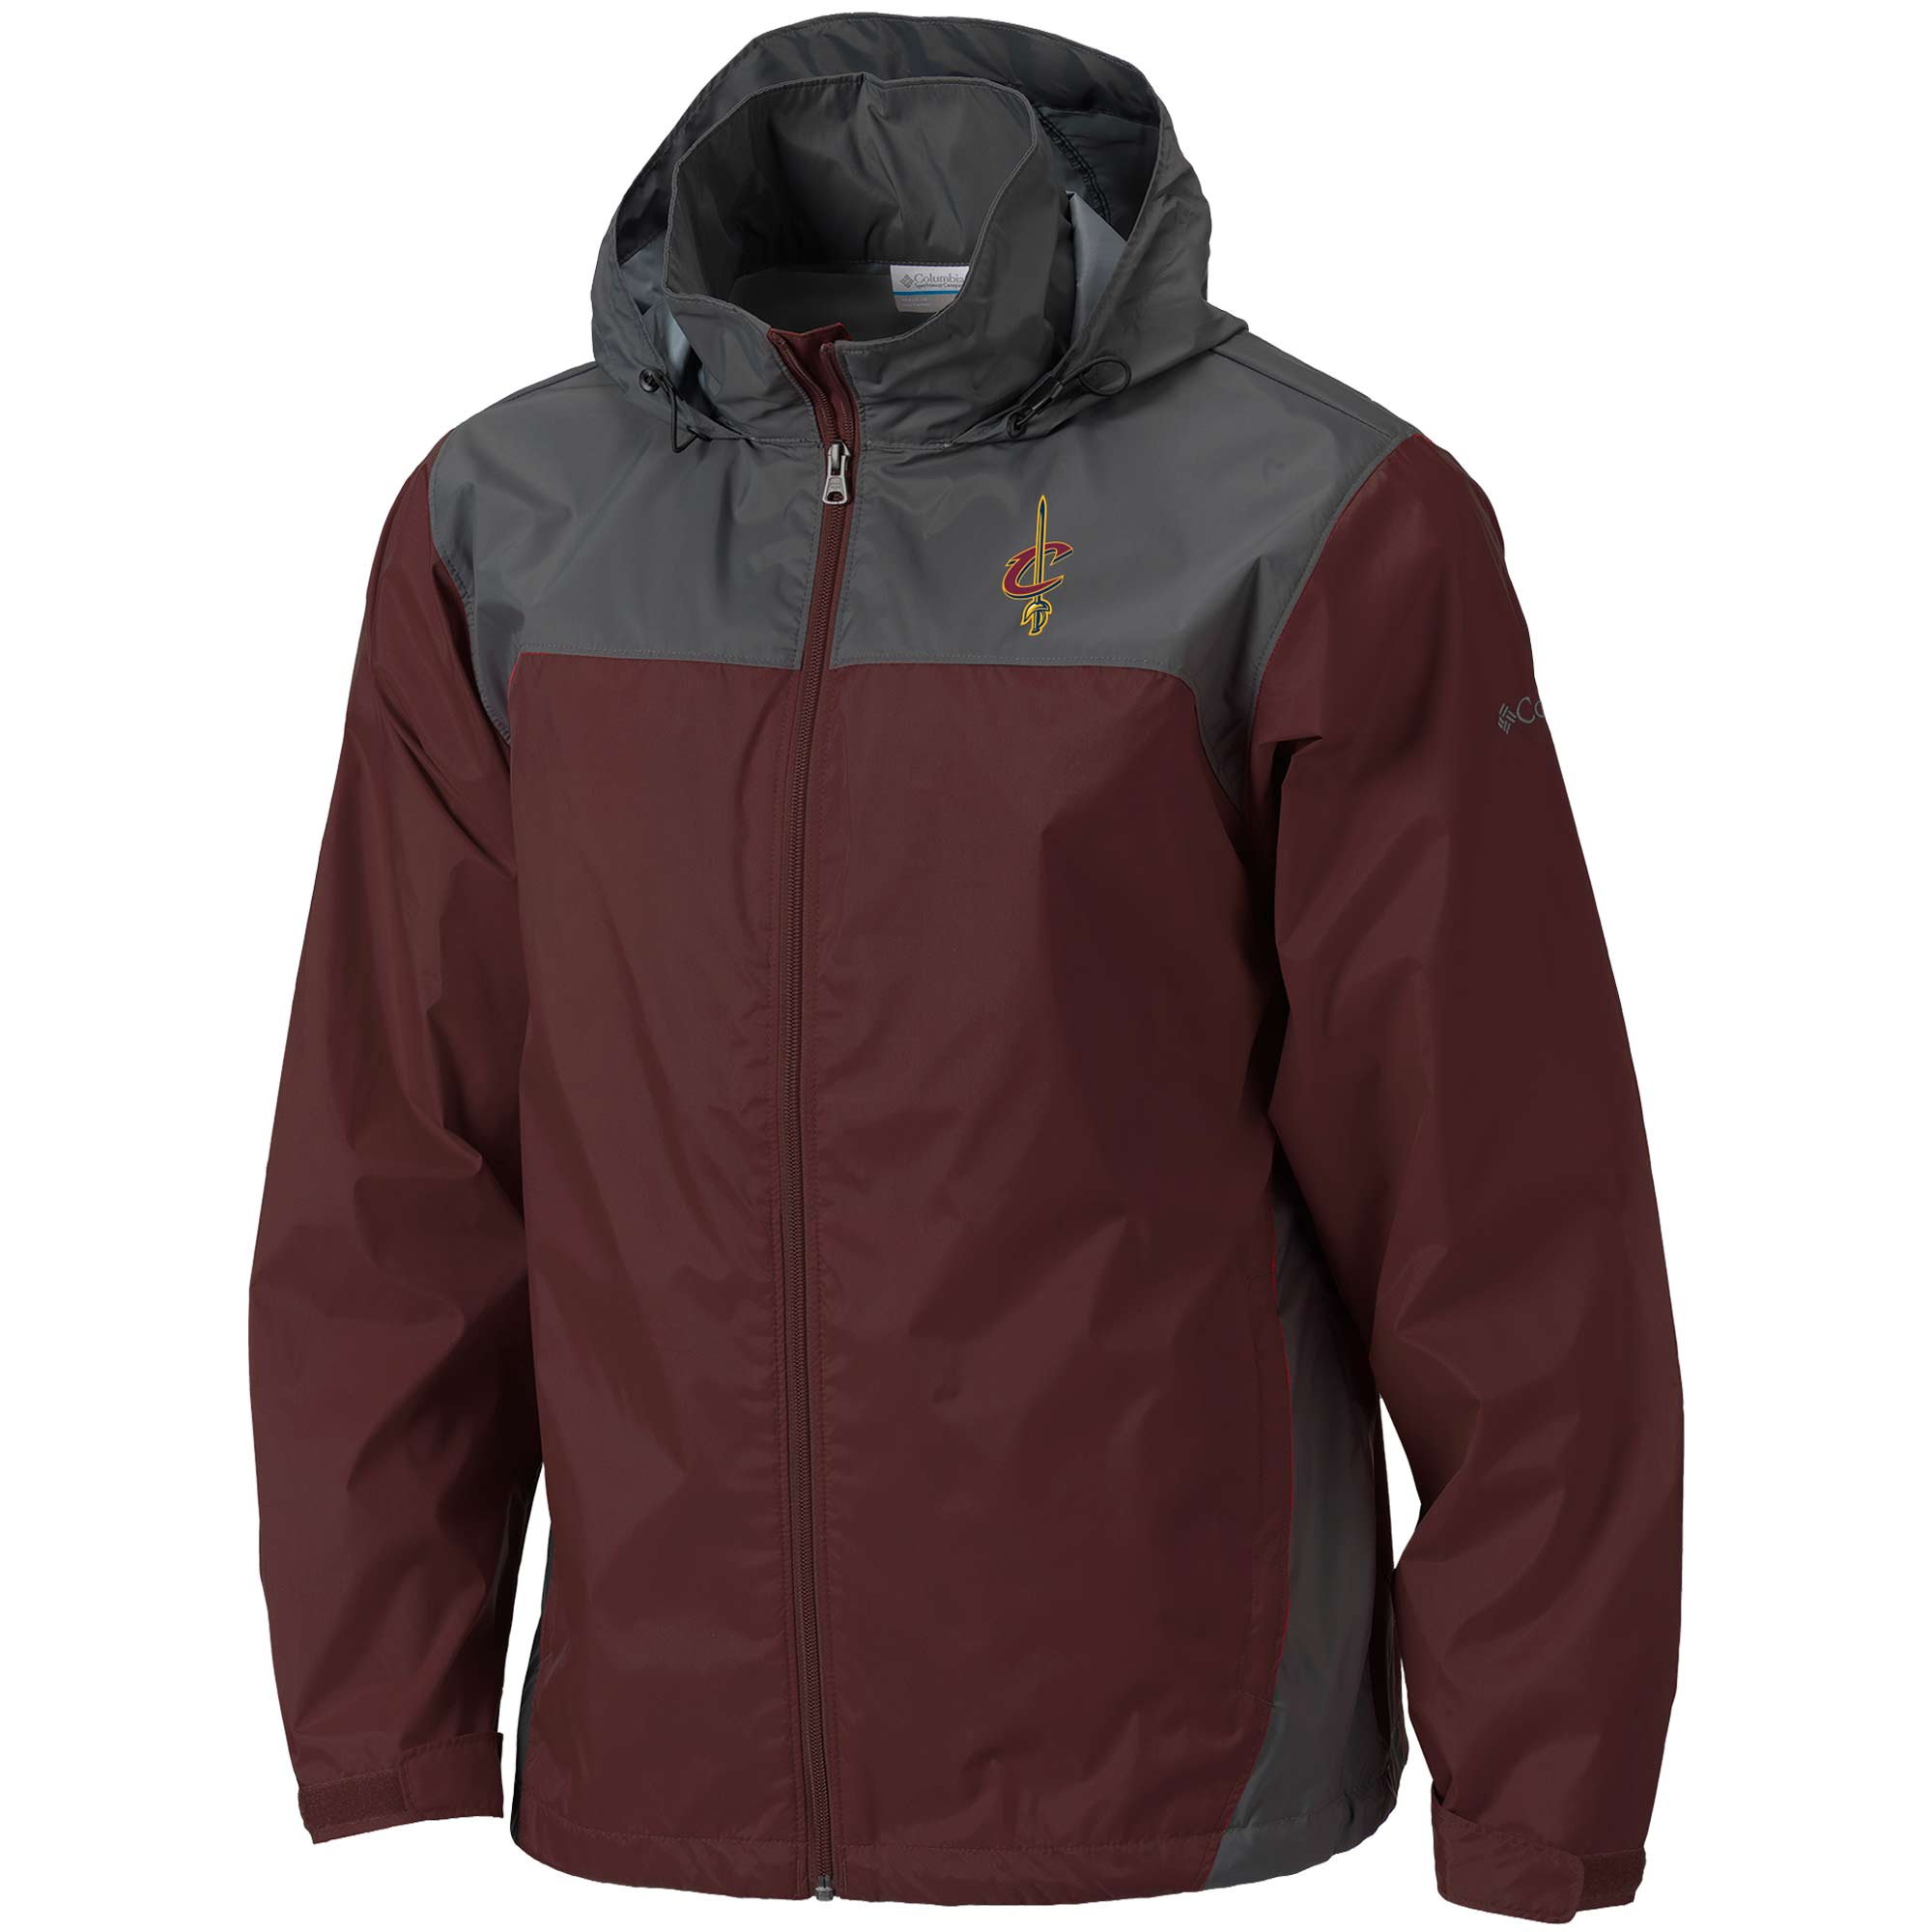 Cleveland Cavaliers Columbia Glennaker Lake Full-Zip Jacket - Wine